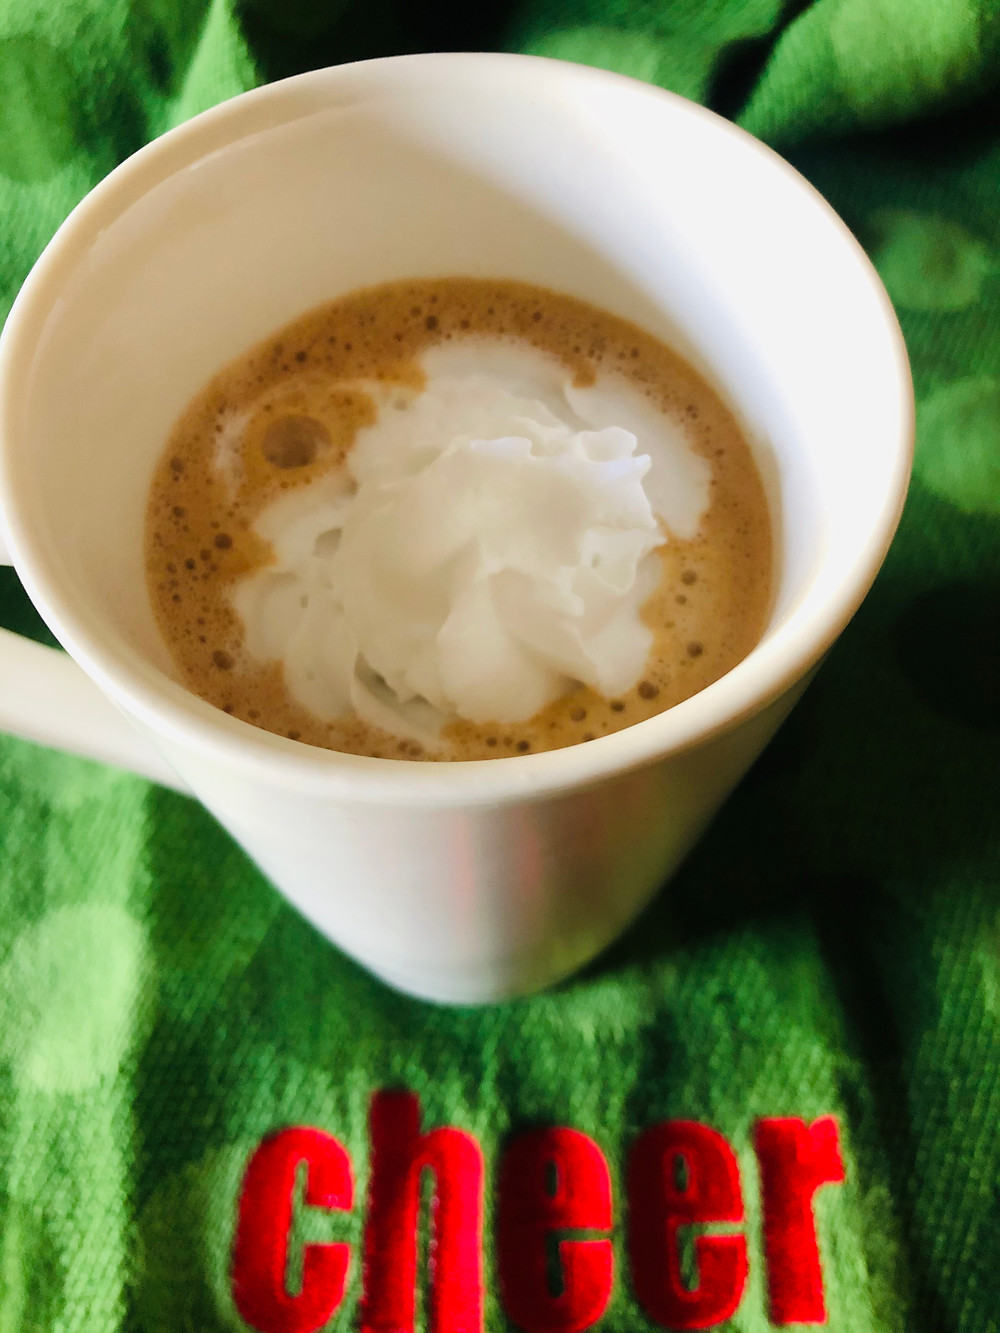 peppermint mocha whipped cream in a white mug keto low carb sugar free